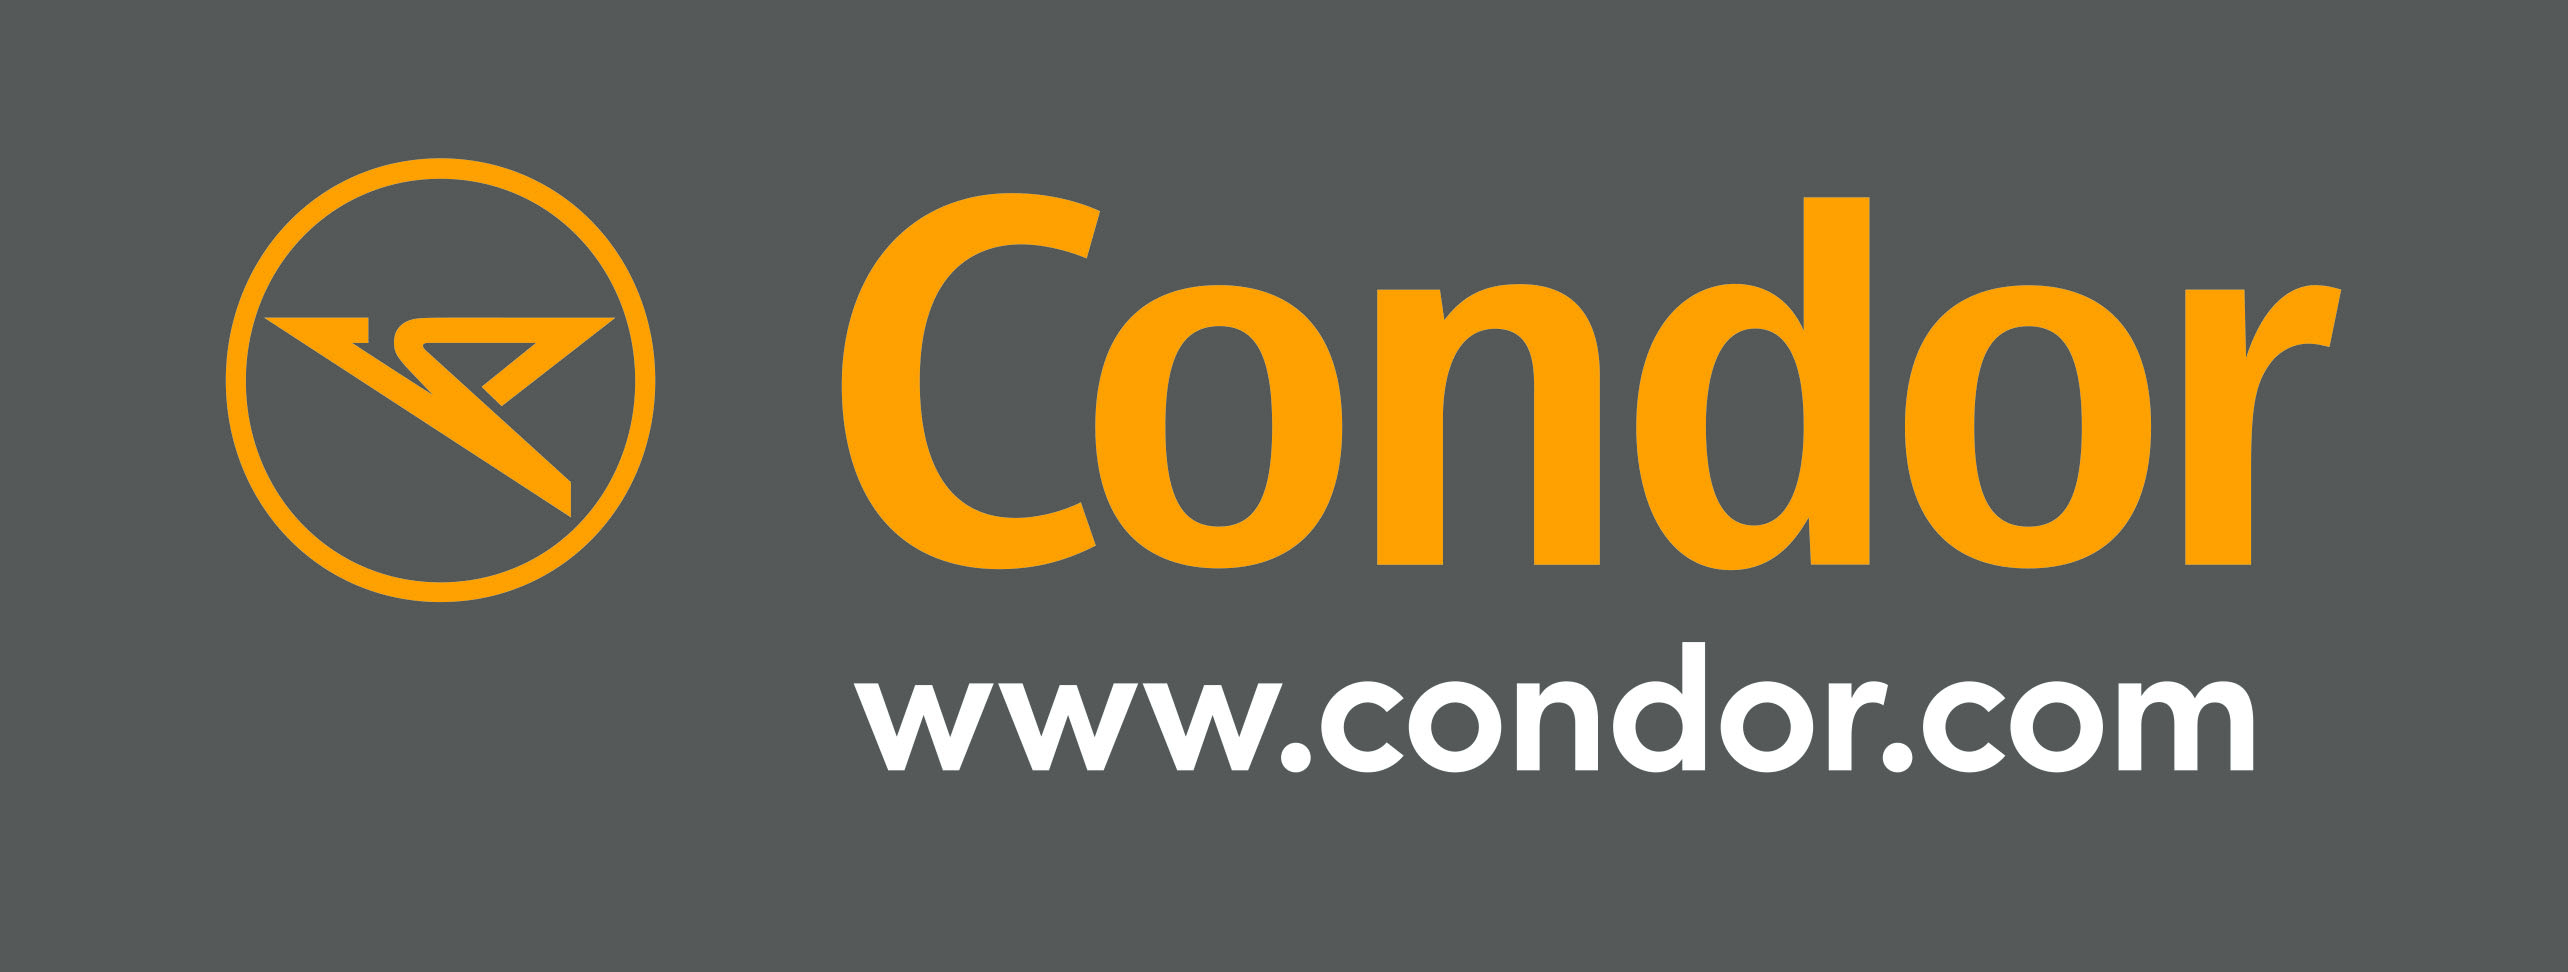 condor.com with Condor Coupons & Code Promo